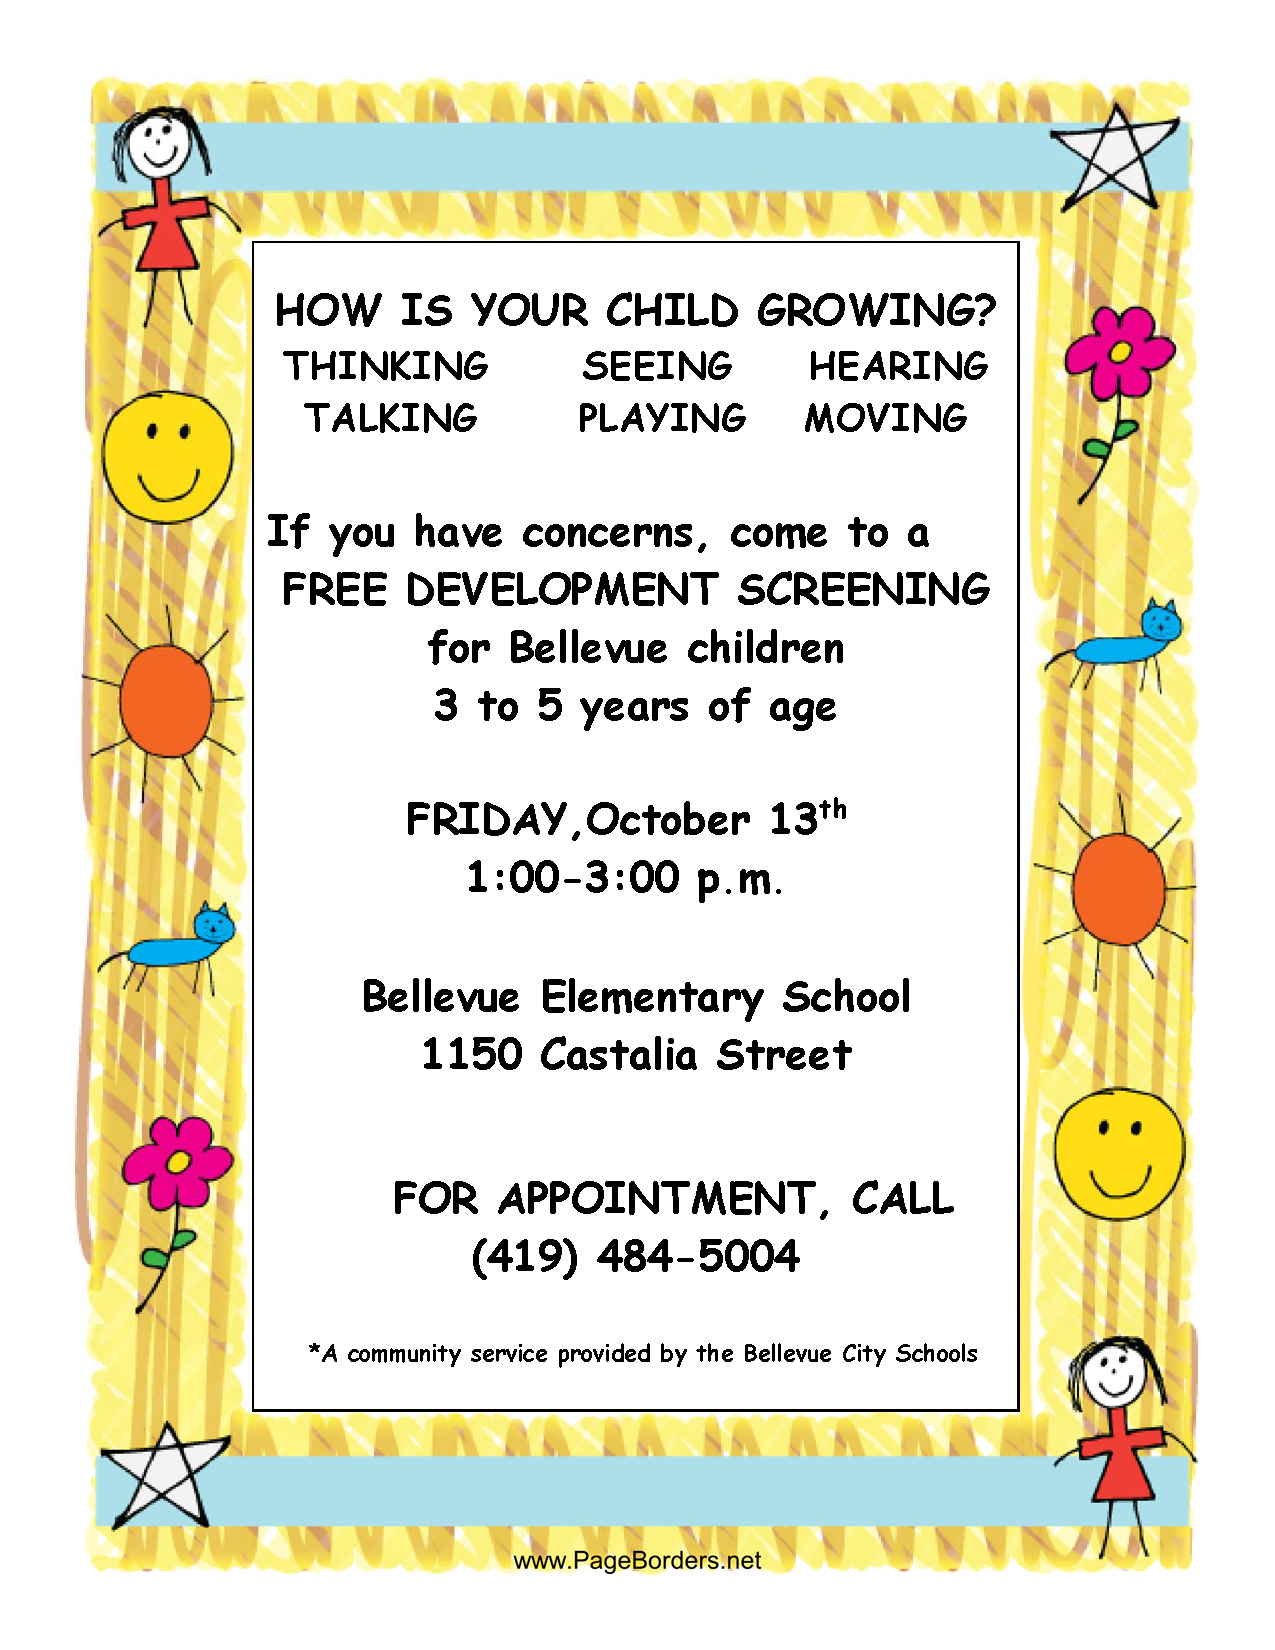 flier for screening